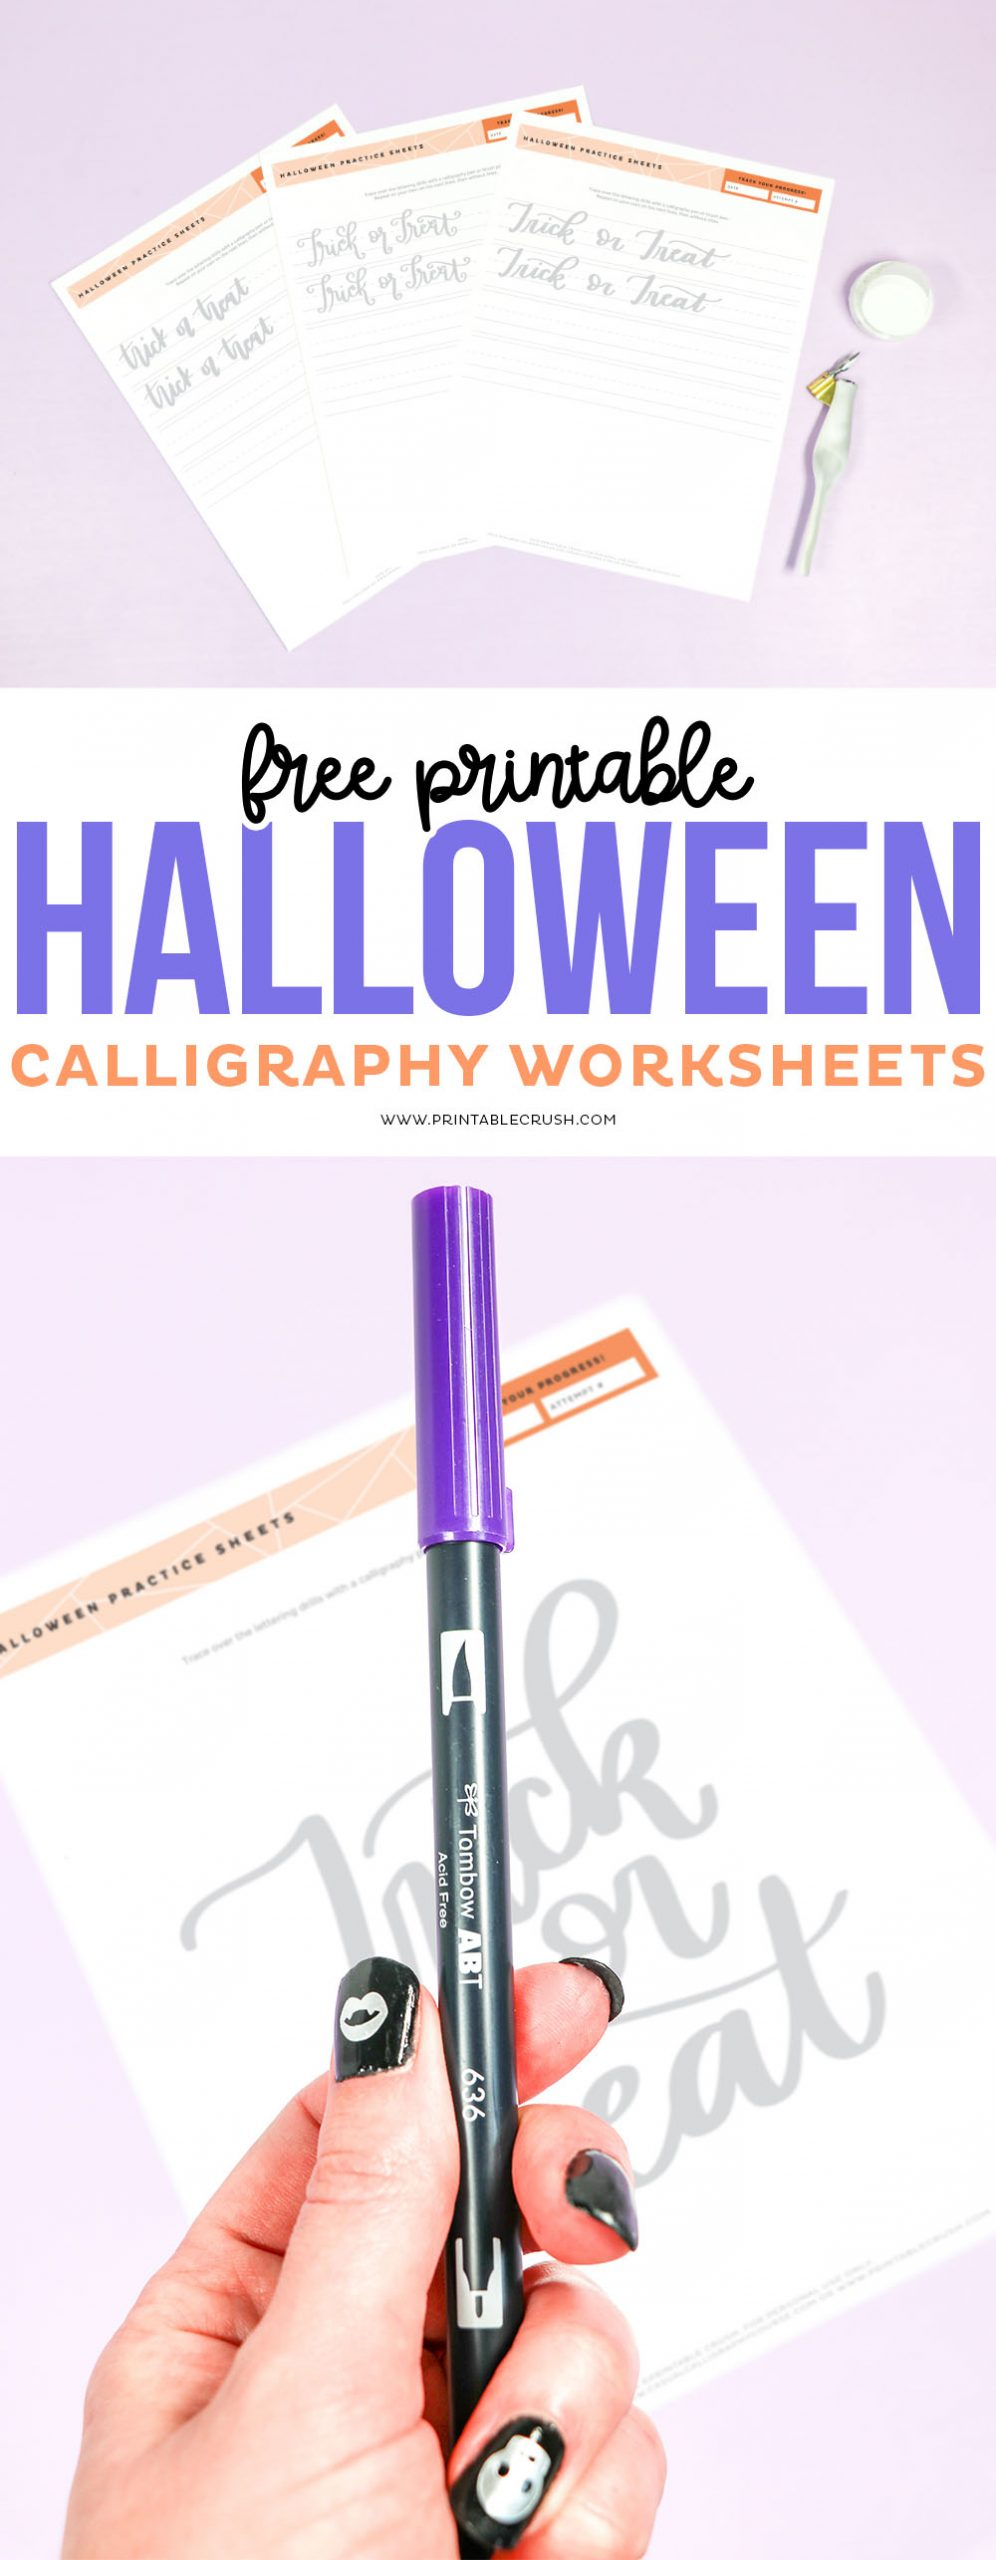 Halloween Calligraphy Practice Sheets - Trick or Treat Calligraphy Quote - Printable Crush